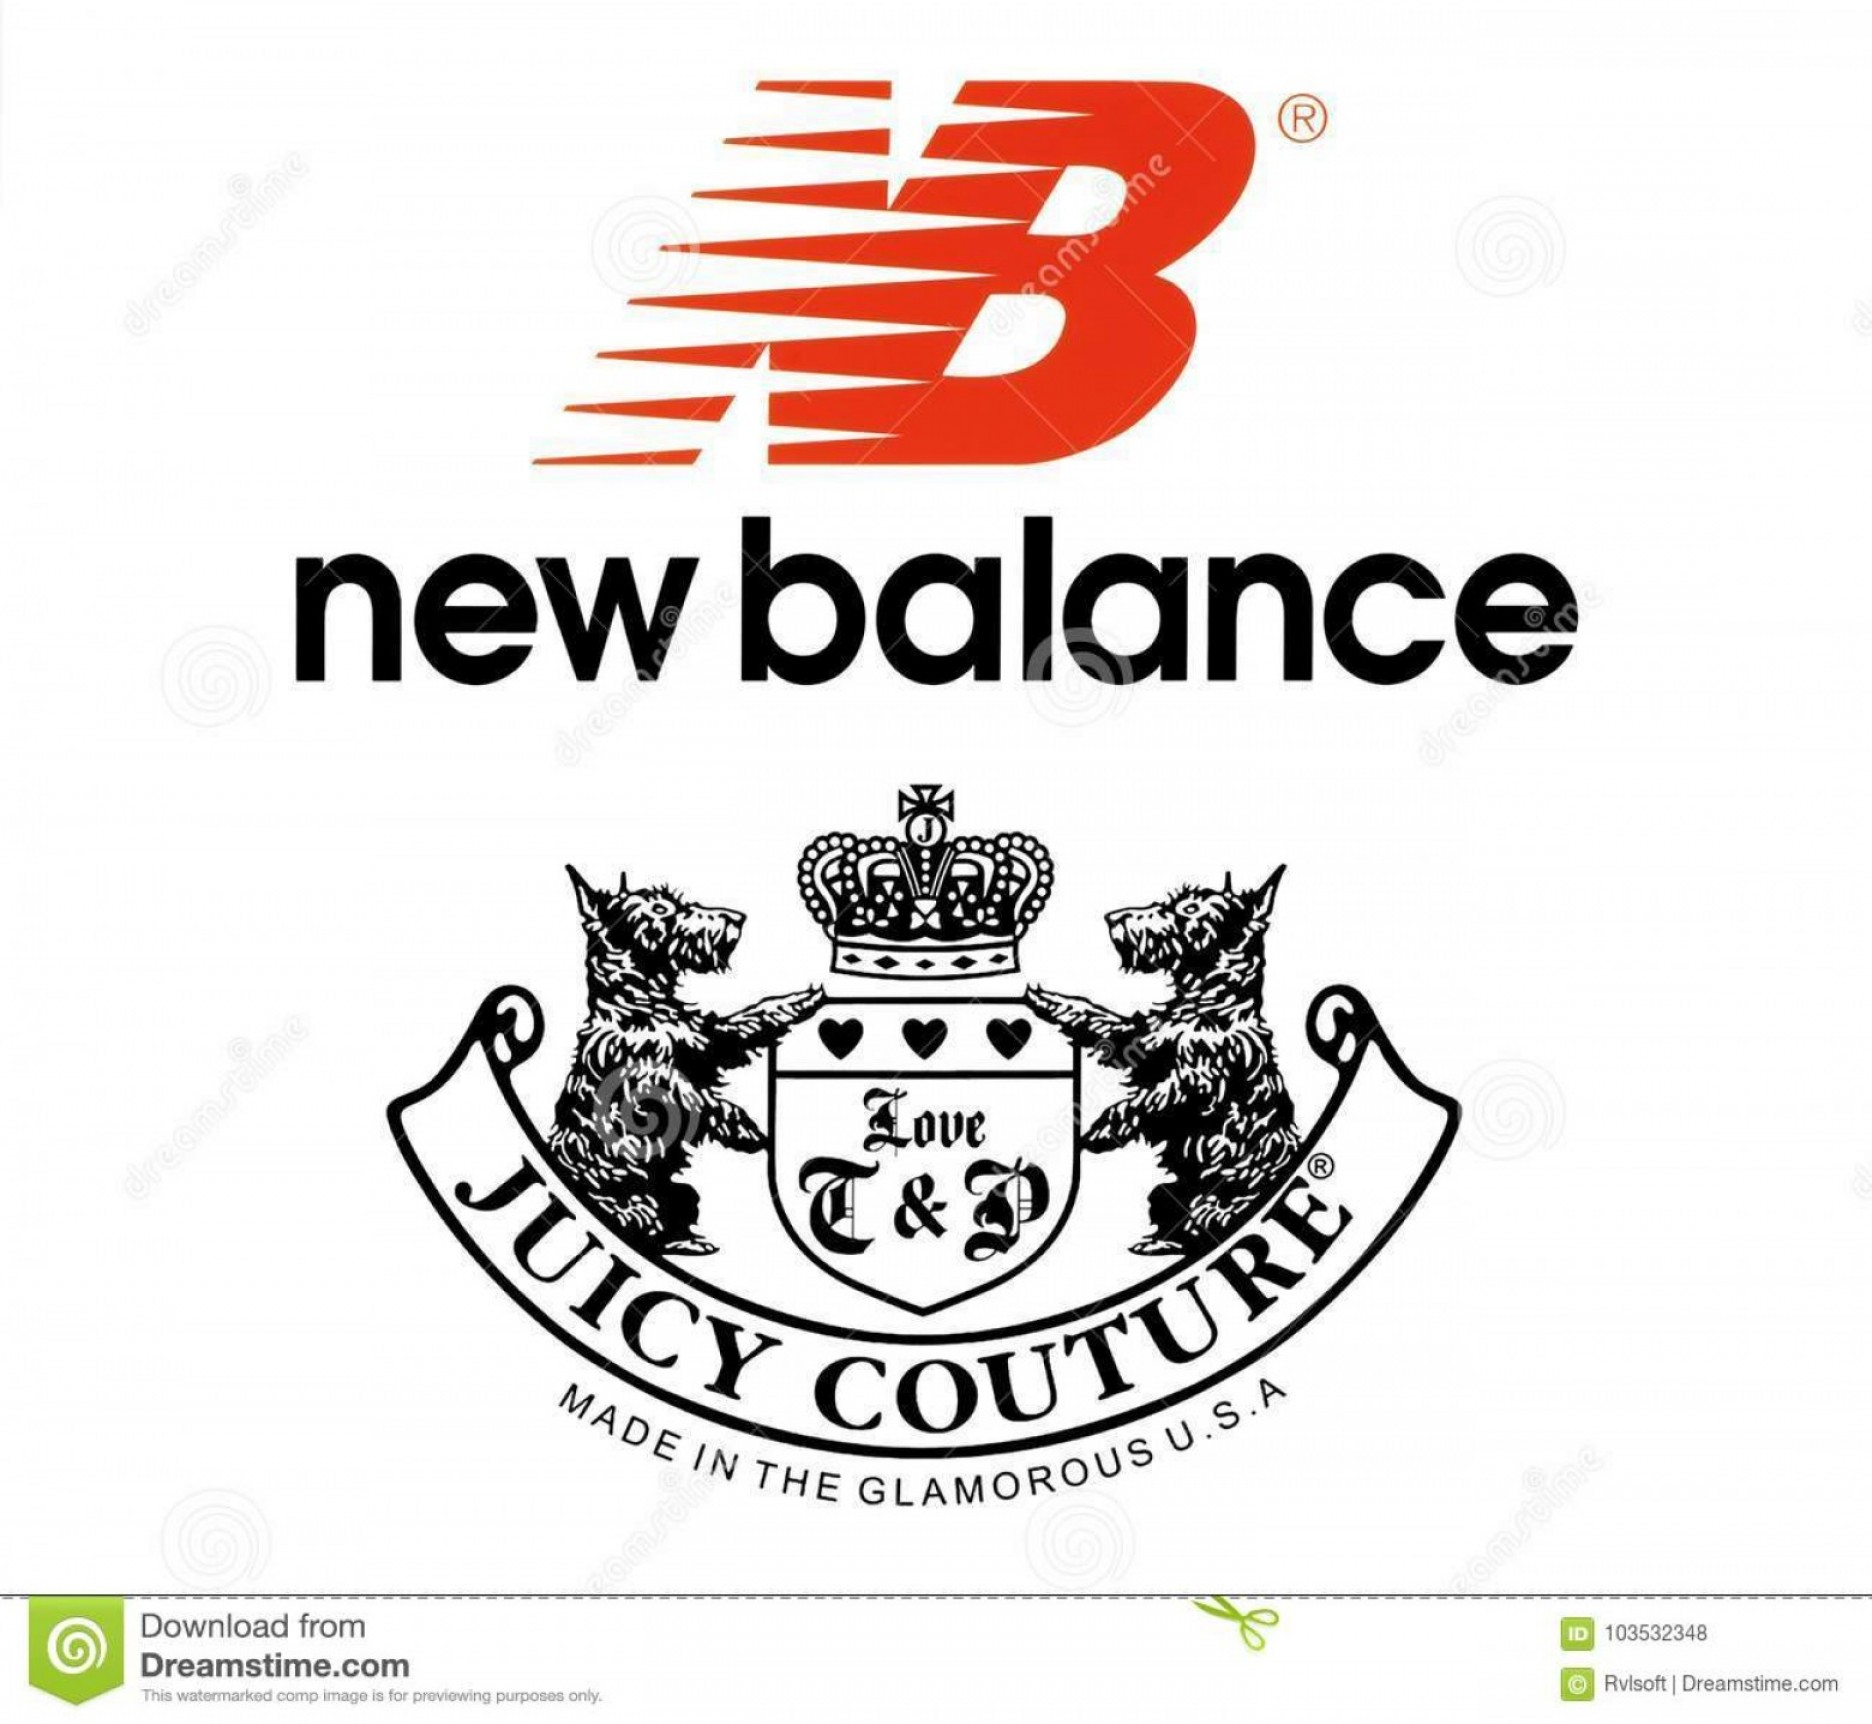 New Balance Vector: Collection Popular Sportswear Manufactures Logos Kiev Ukraine October Printed Paper New Balance Juicy Couture Image